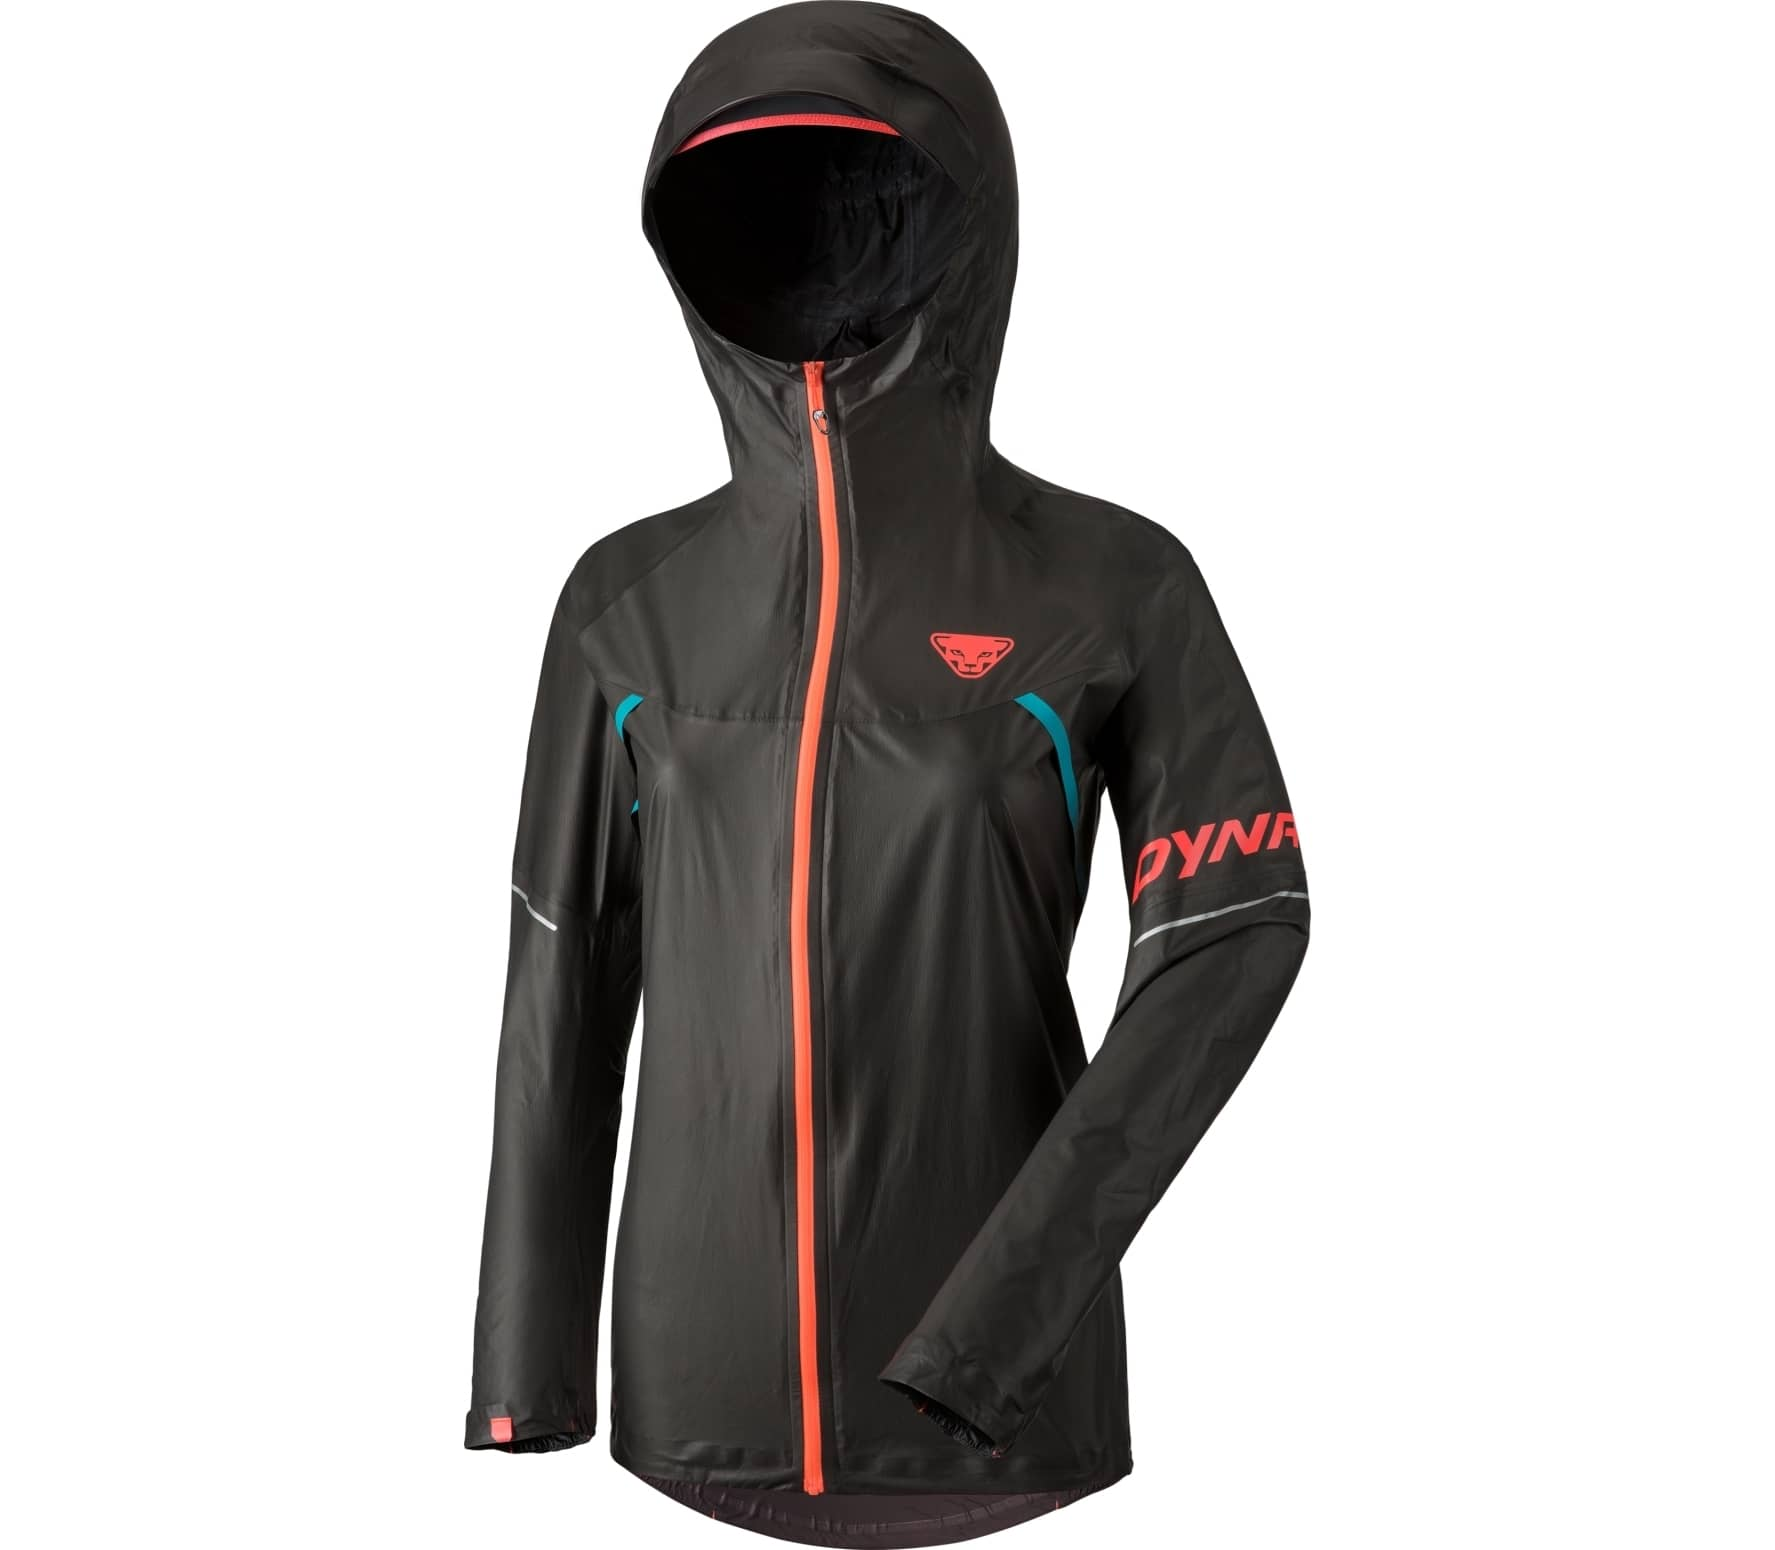 Dynafit - Ultra Gore-Tex® Shakedry women's running jacket (grey/red) - S thumbnail